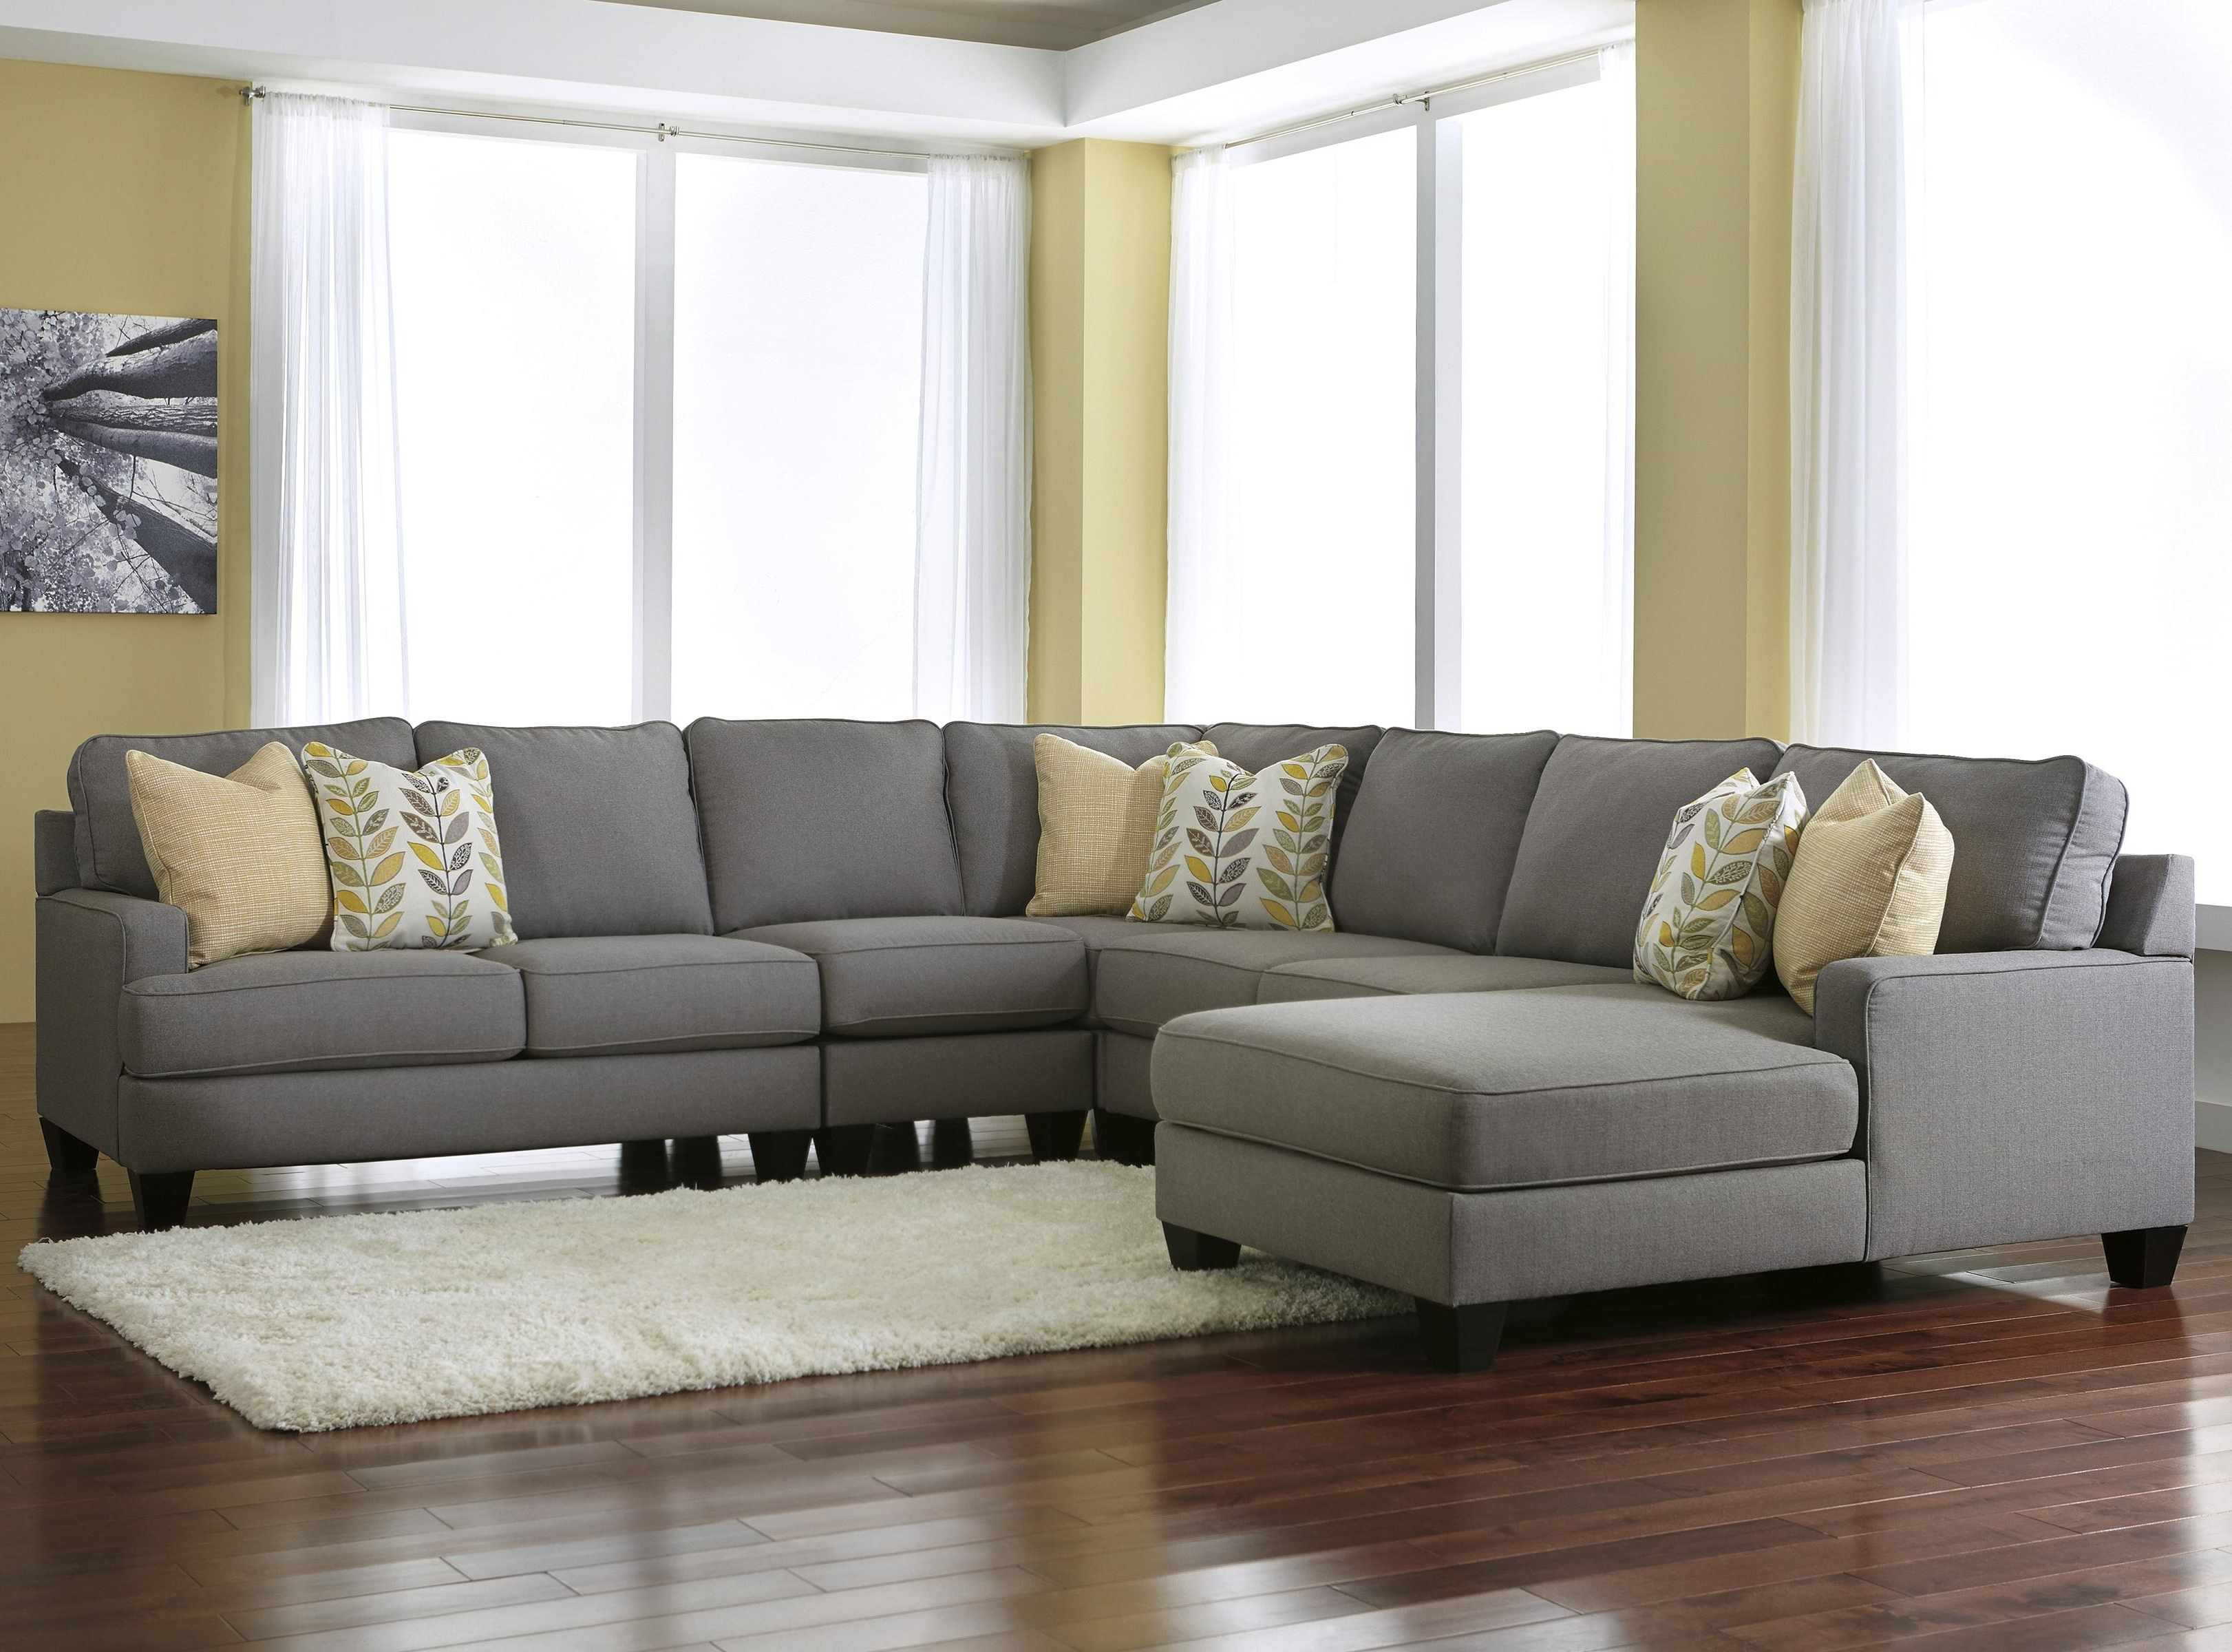 Signature Designashley Chamberly – Alloy Modern 5 Piece Throughout Most Recently Released Home Furniture Sectional Sofas (View 12 of 20)